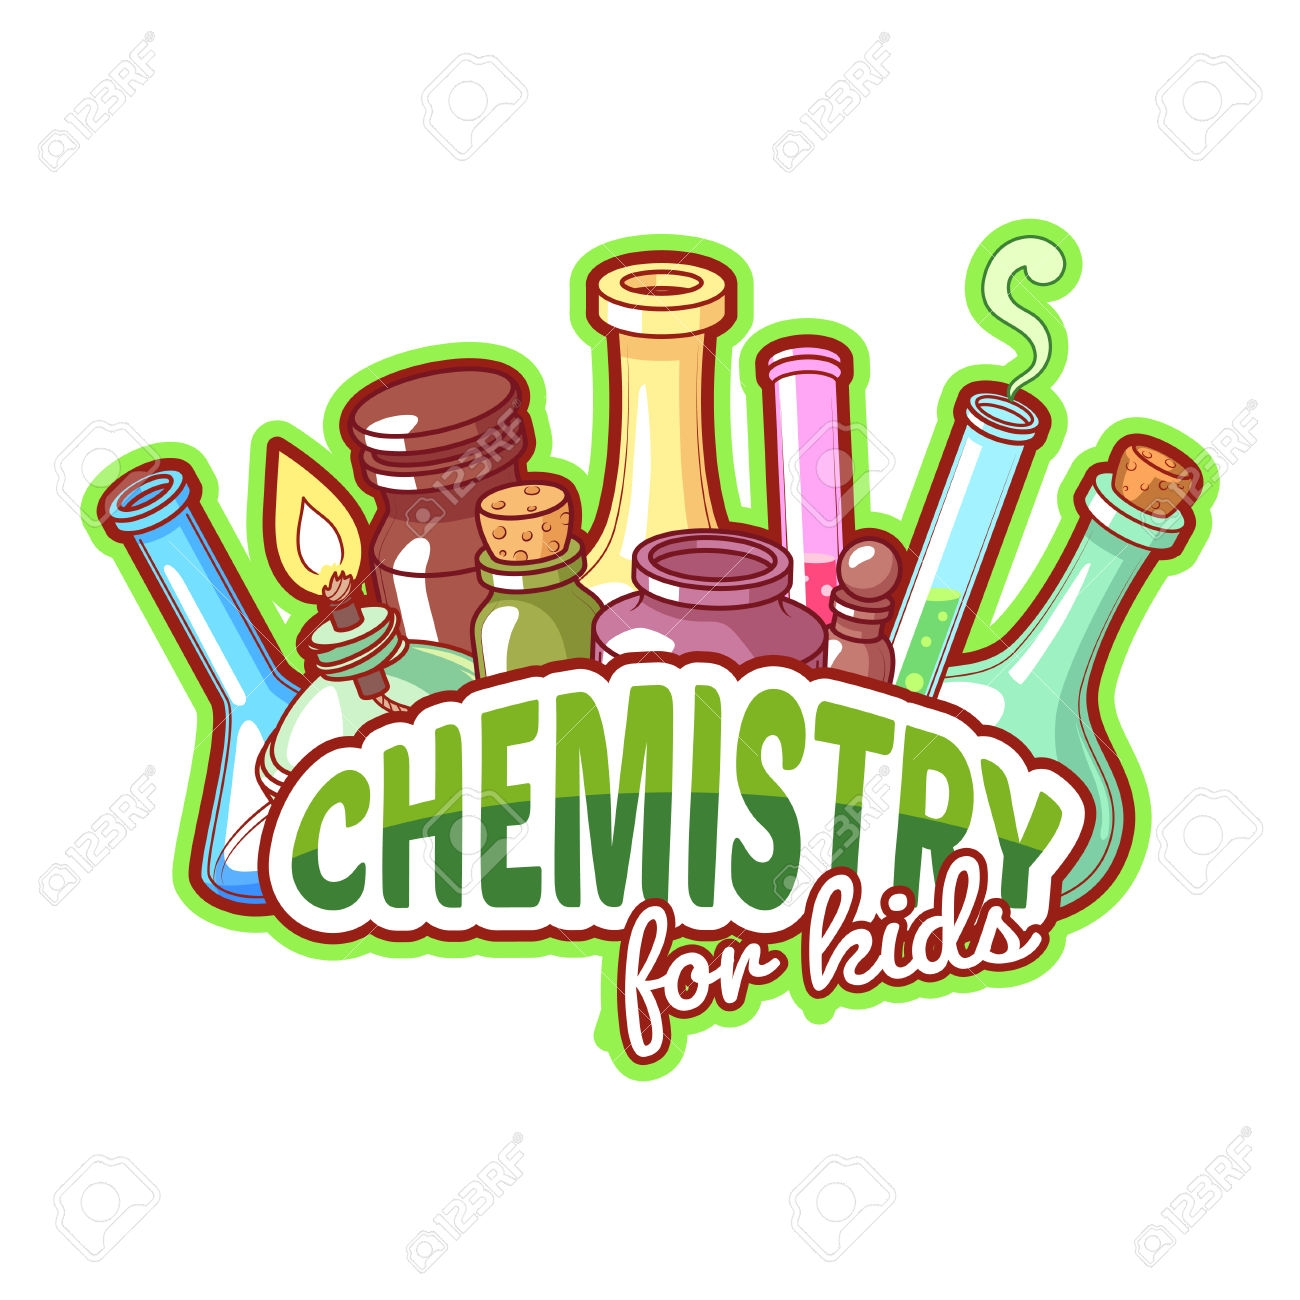 Awesome gallery digital collection. Chemistry clipart clip art